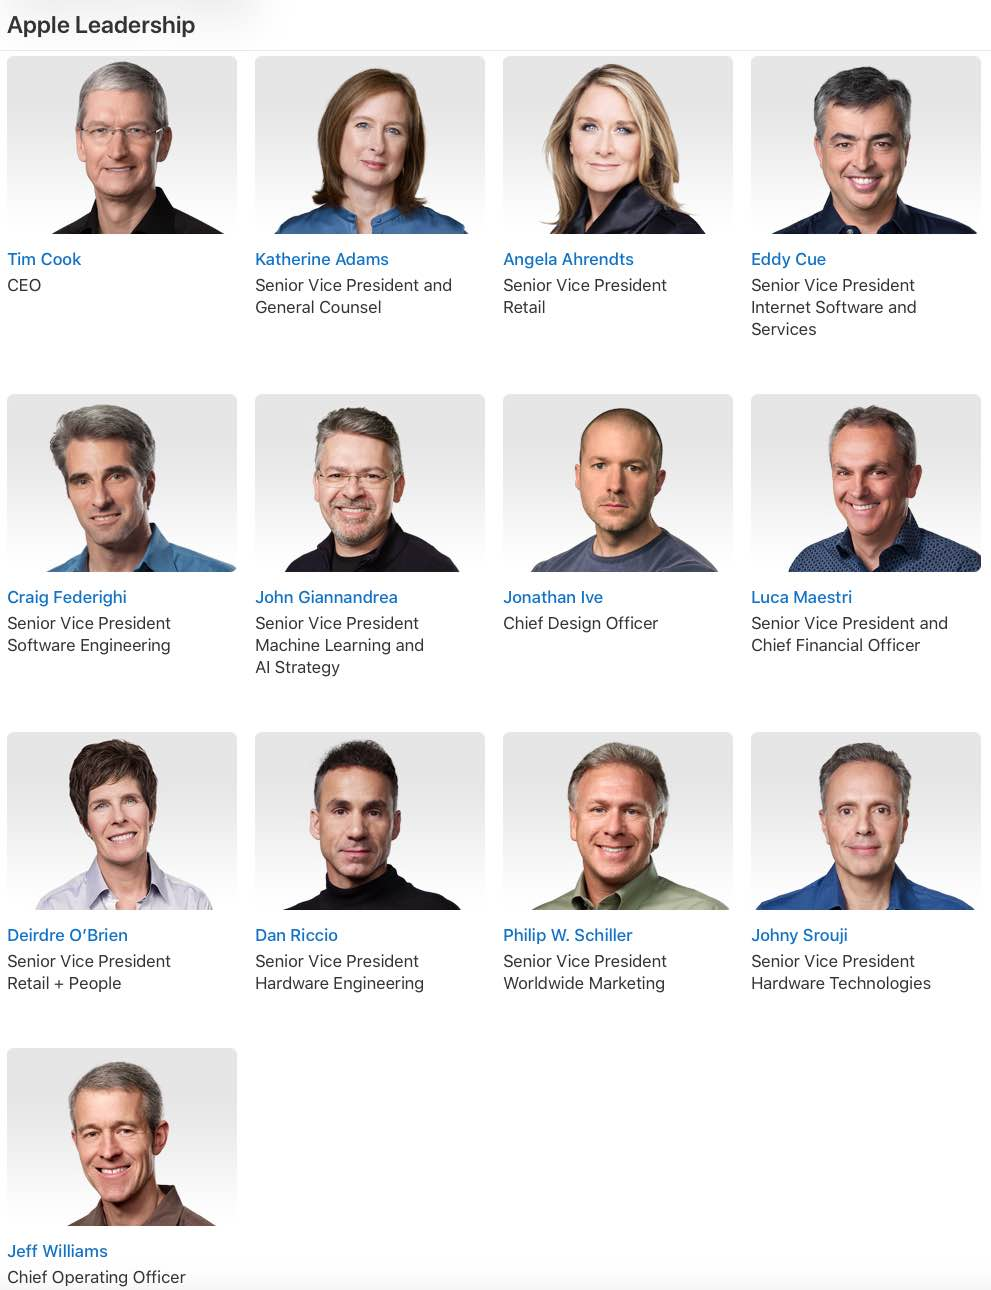 Apple has been reshuffling its executive team as it changes